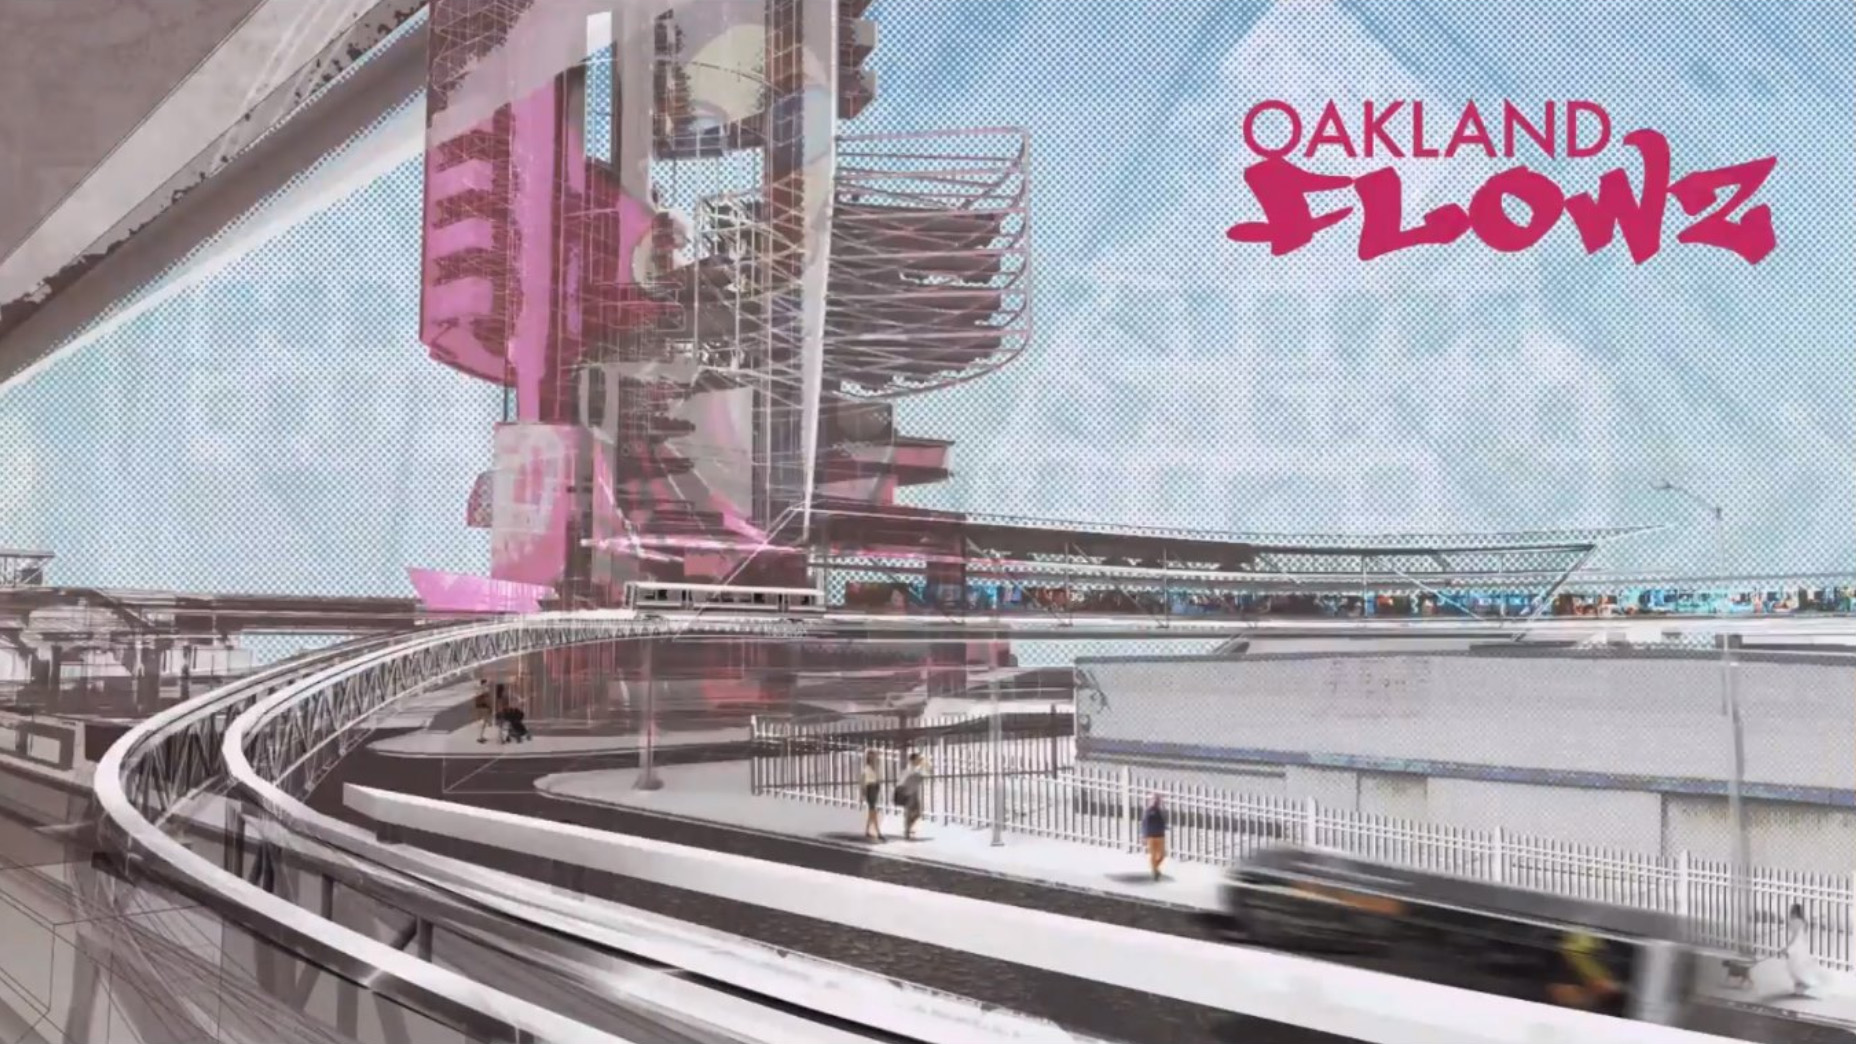 Cal Poly's student NOMA chapter won the prestigious 2020 Barbara G. Laurie Student Design Competition with their entry, Oakland Flowz, which draws upon existing BART transportation infrastructure in the Bay Area city to reimagine a fluid, mobile architecture that could broaden community outreach and increase accessibility to public essentials.